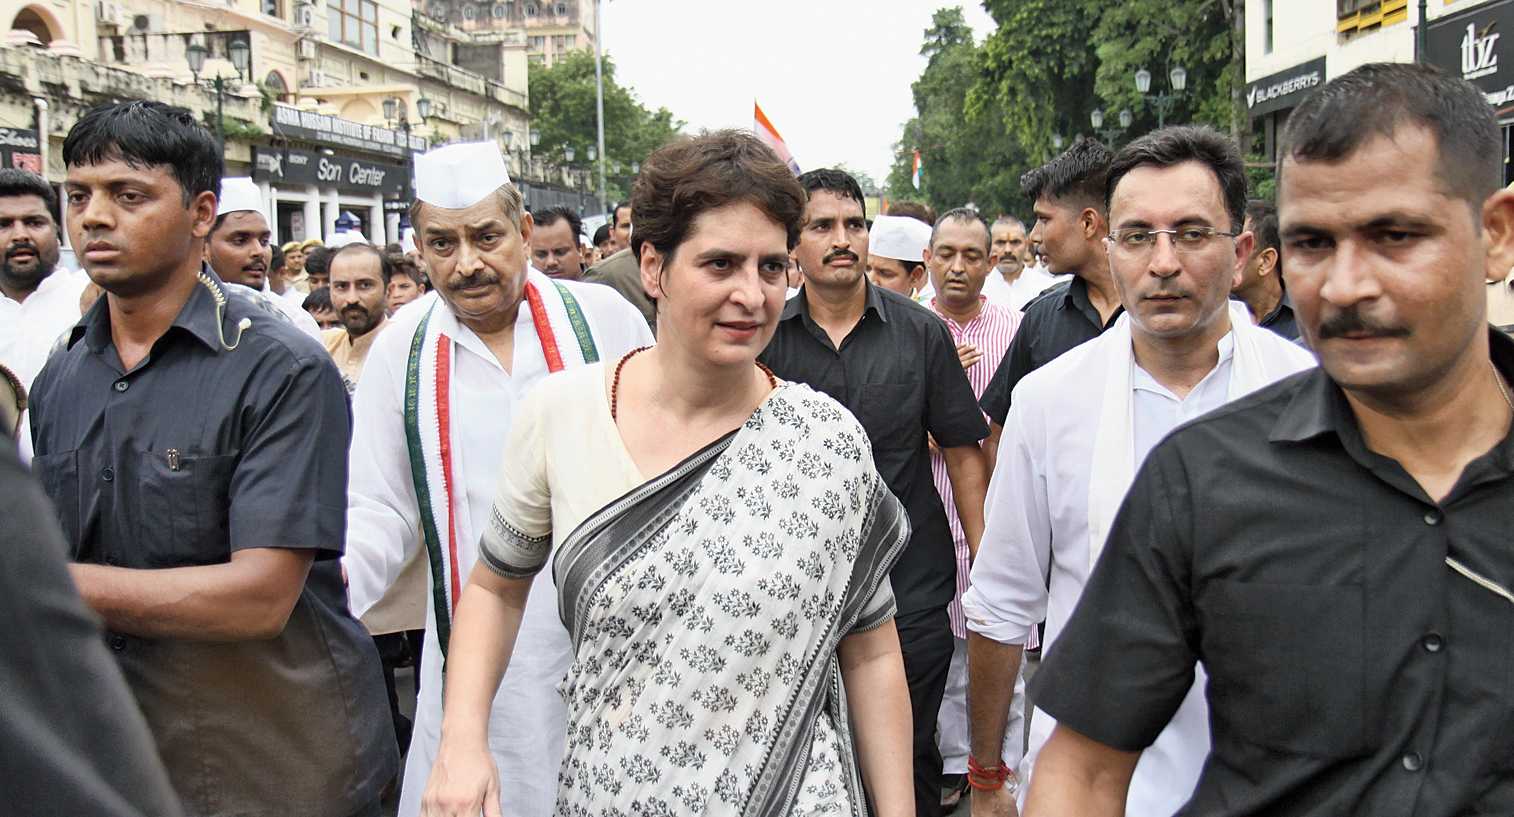 Priyanka Gandhi Vadra takes part in the Gandhi Sandesh Yatra in Lucknow on Mahatma Gandhi's birth anniversary on Wednesday.